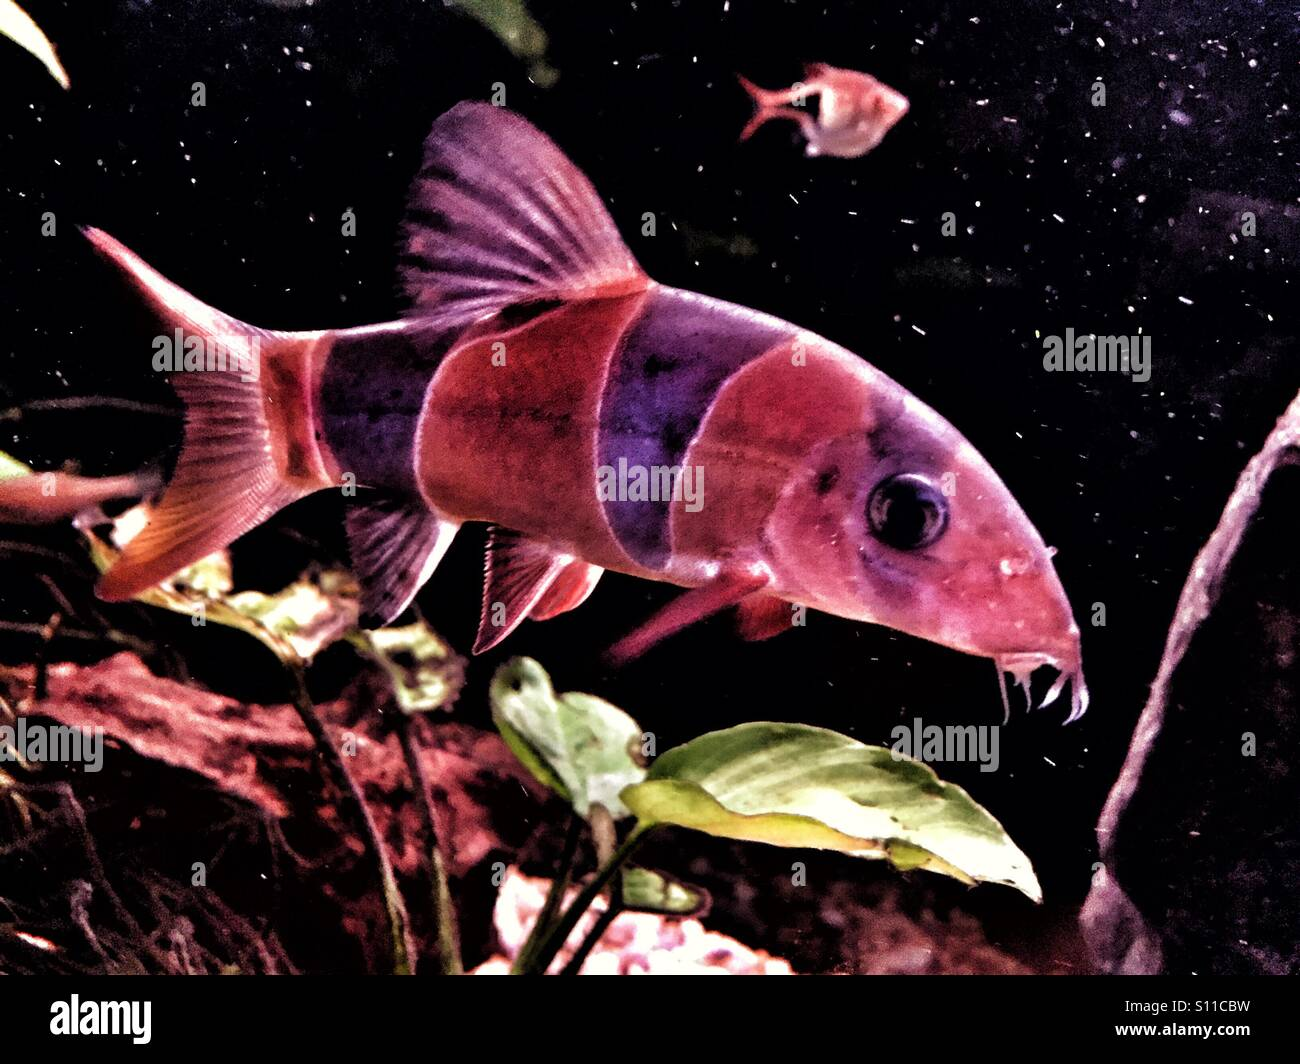 Clown Loach Stock Photos & Clown Loach Stock Images - Alamy